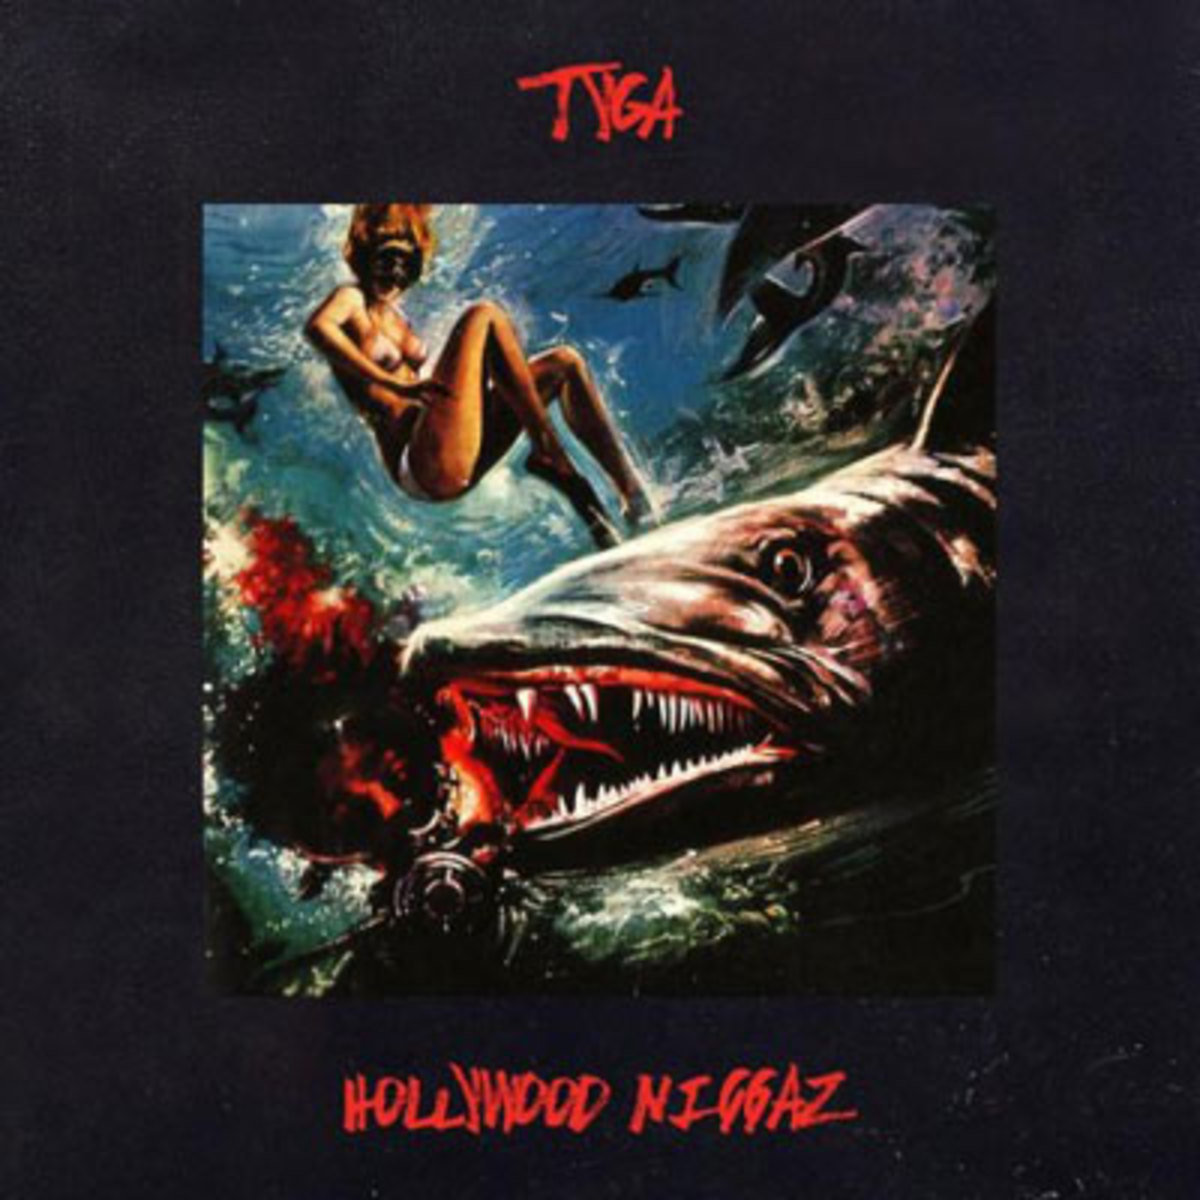 tyga-hollywood-nggaz.jpg